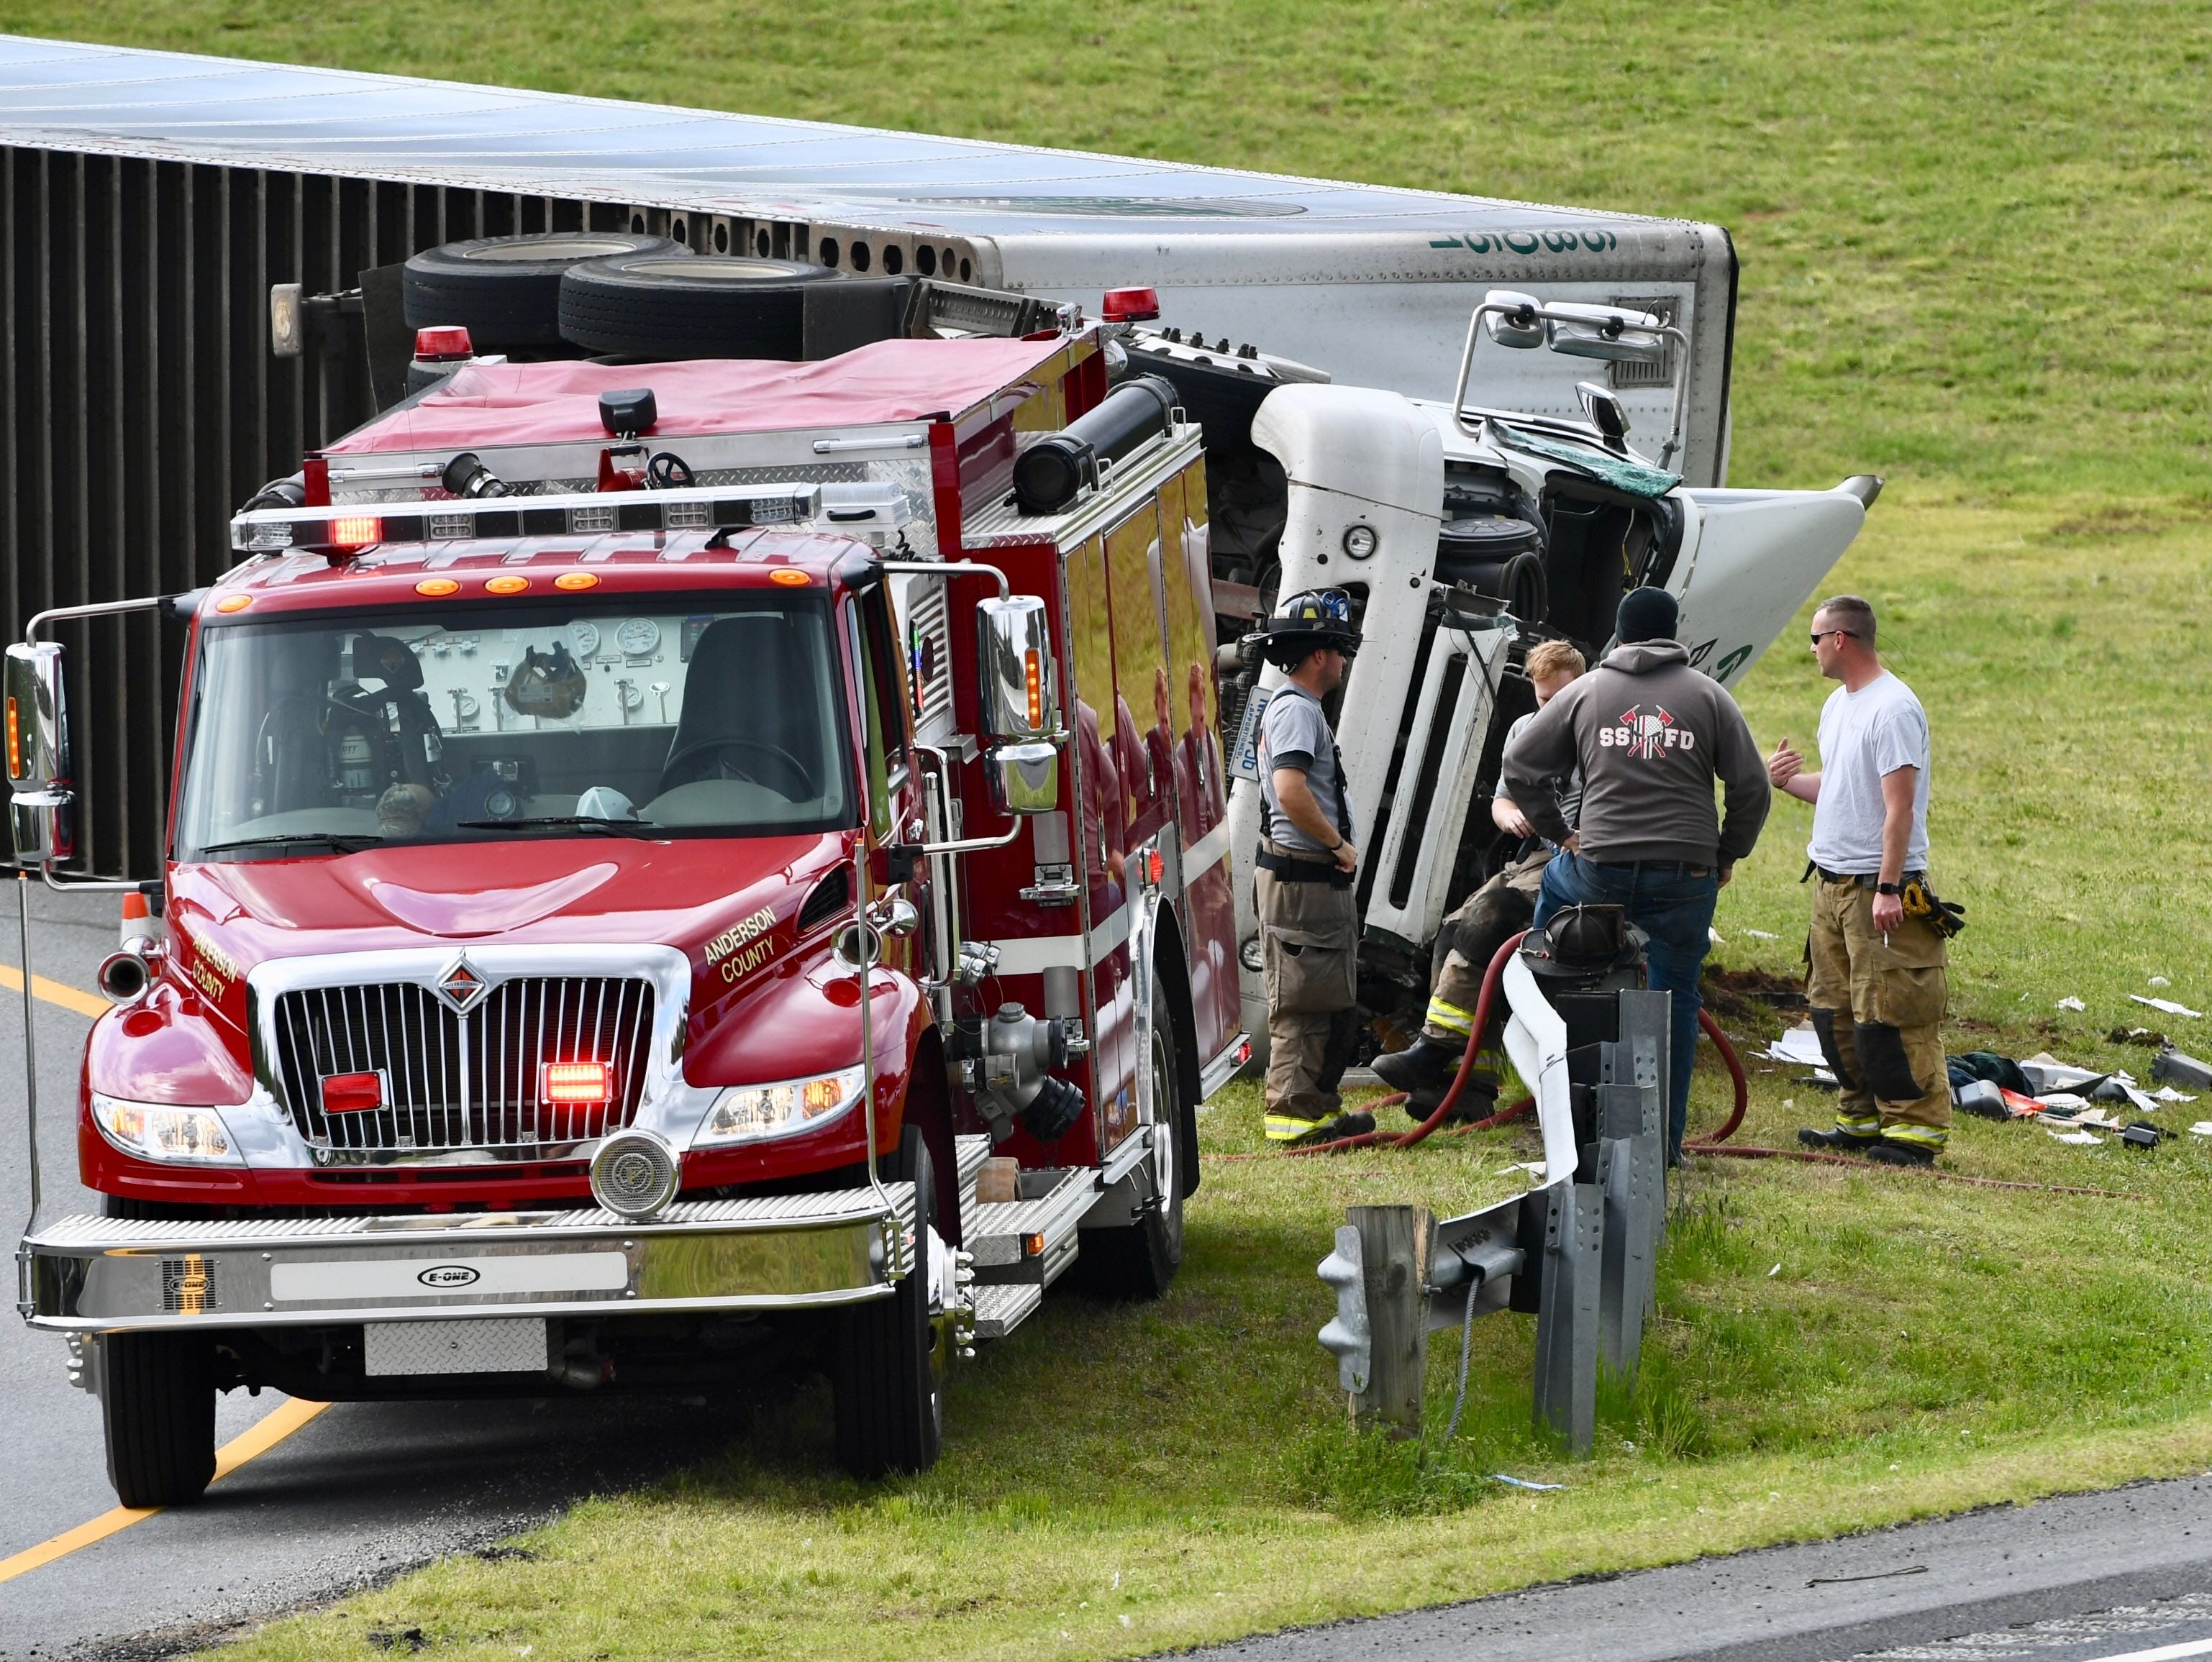 Townville fire department personnel at the scene of an overturned 18-wheeler truck on the northbound Interstate 85 on-ramp at Exit 19 on Tuesday, March 26, 2019.